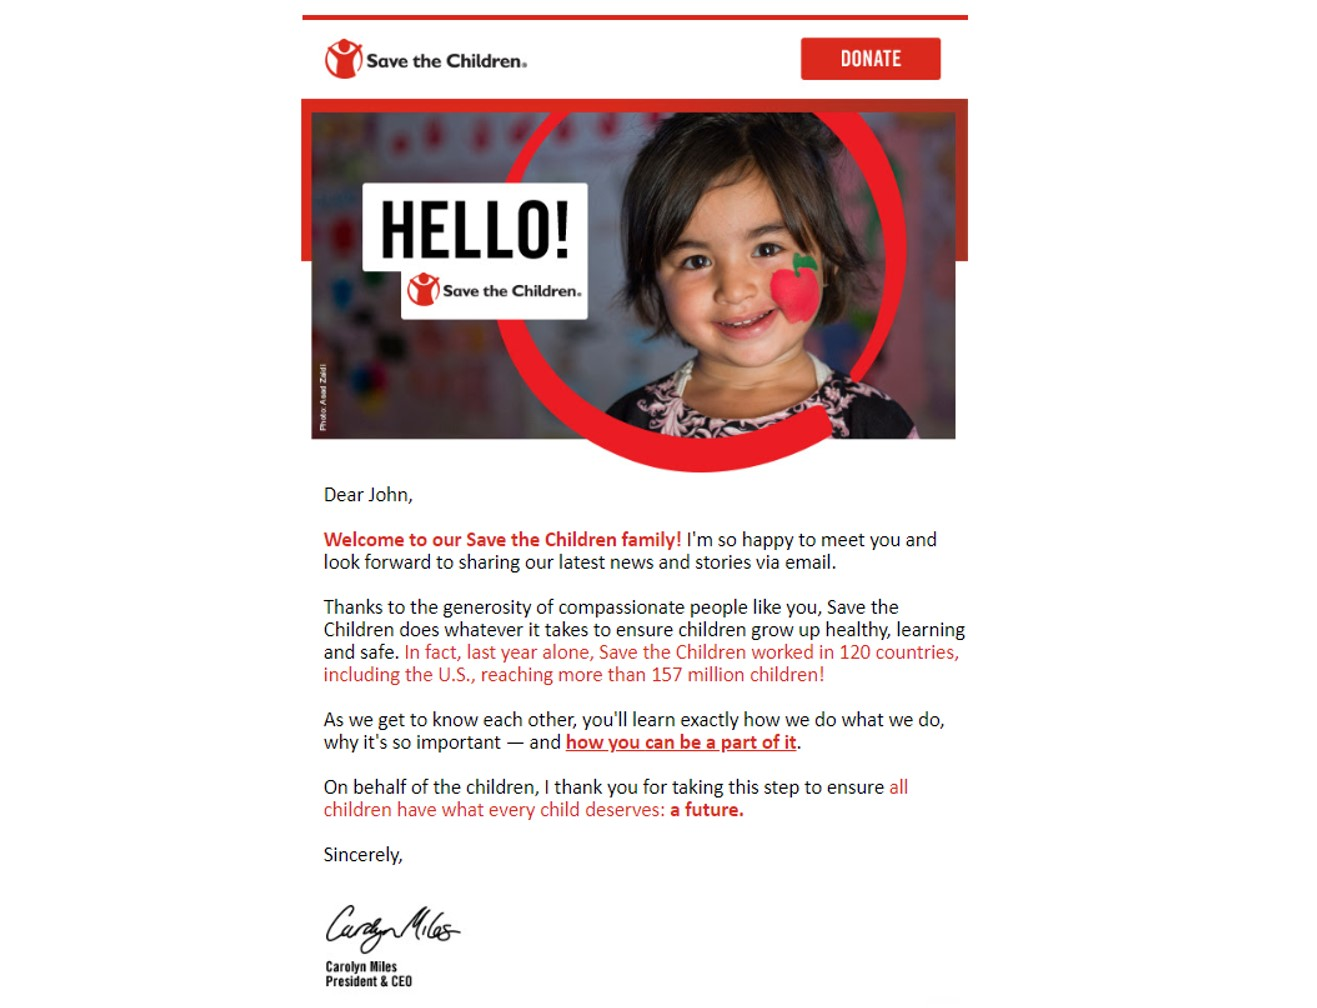 save the children email